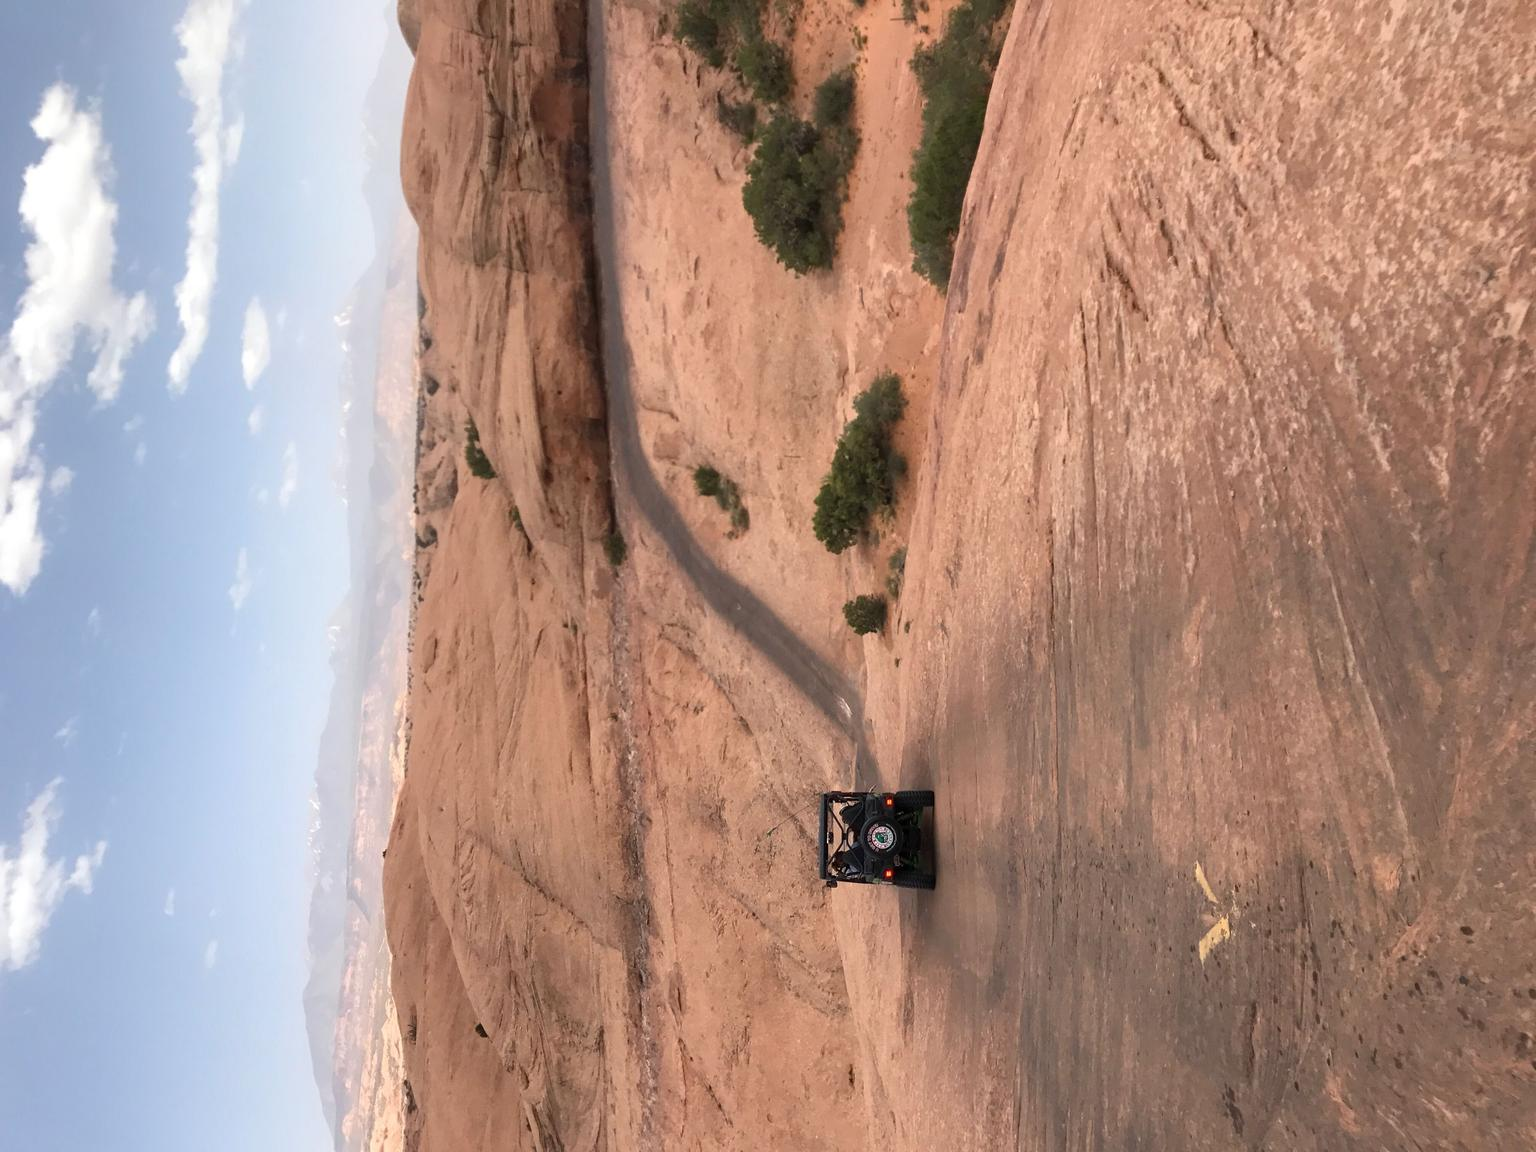 Hell's Revenge 4x4 Off-Roading Tour from Moab